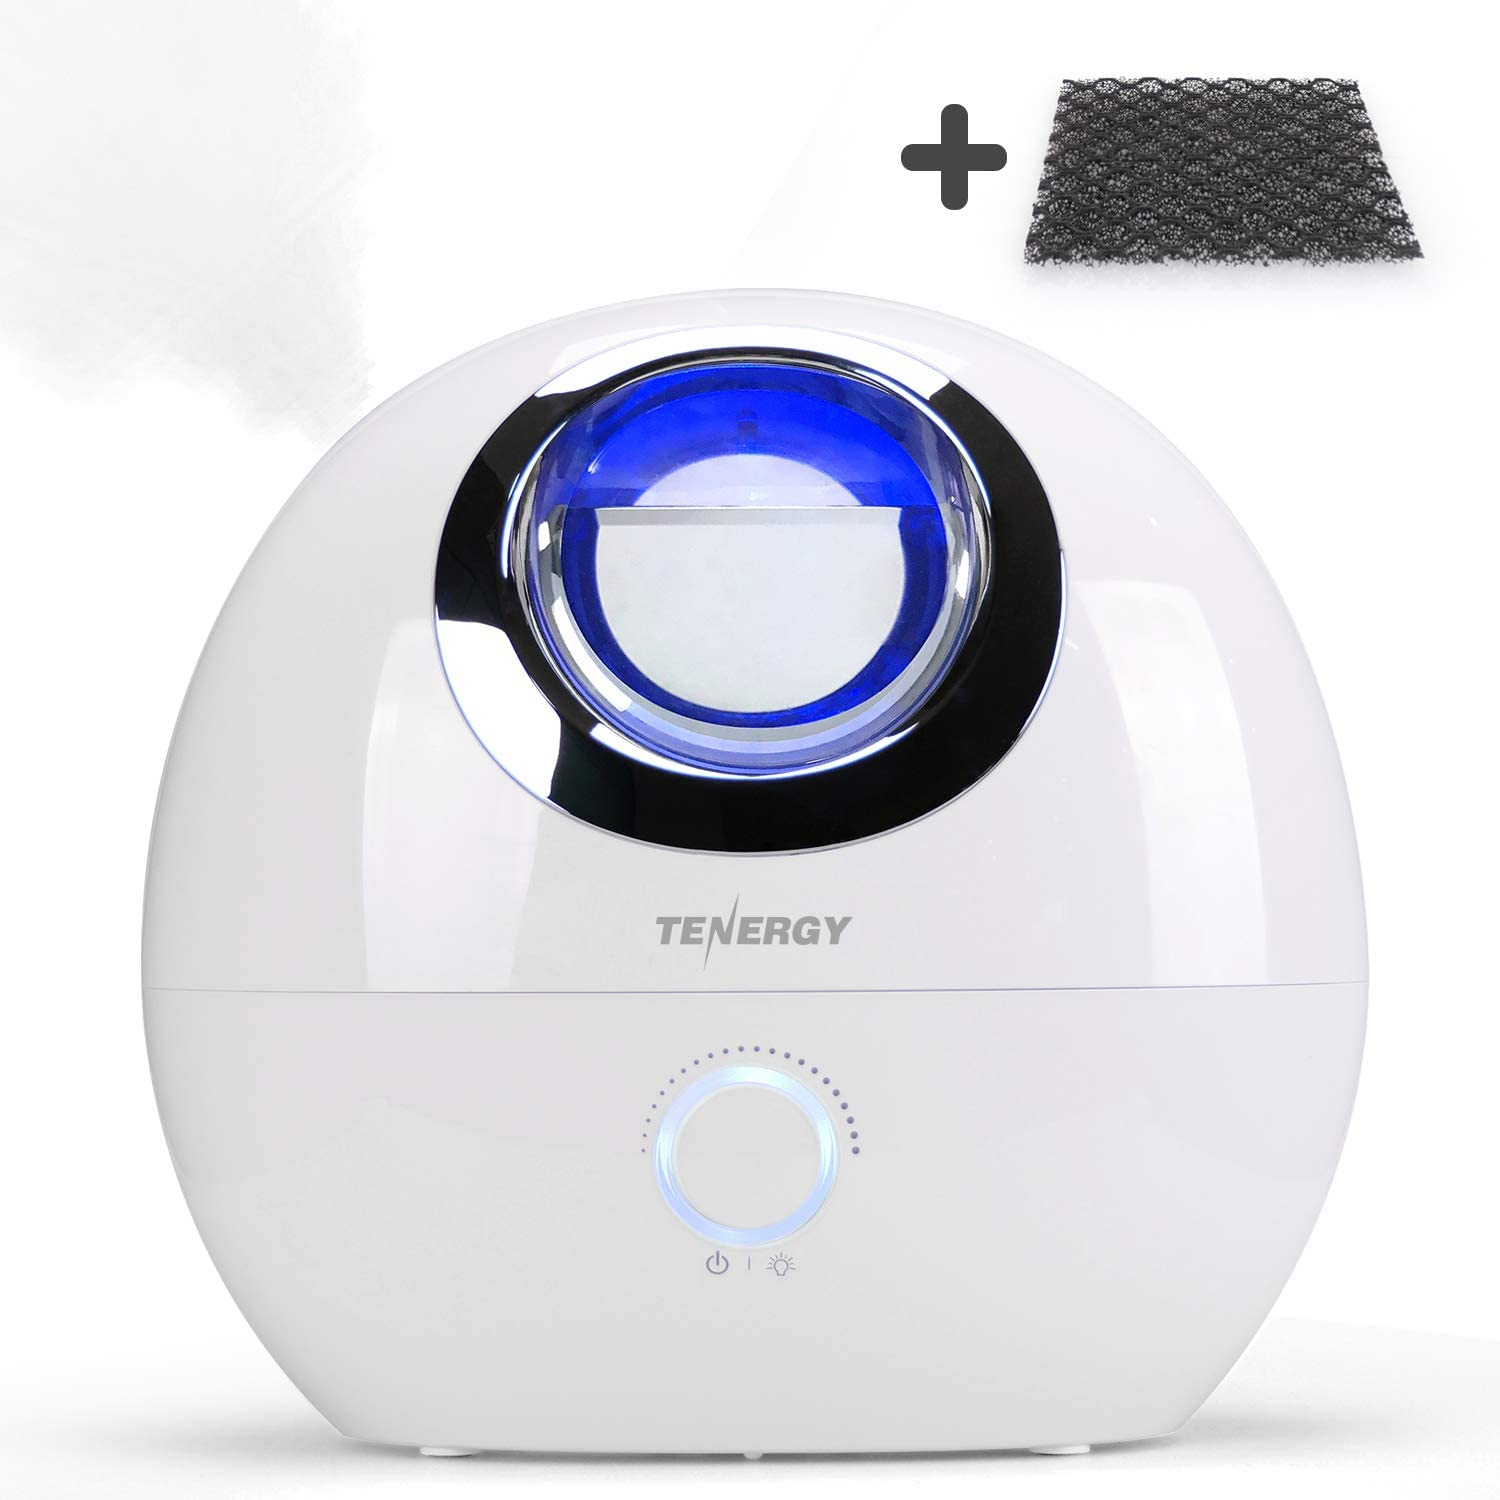 Tenergy Pluvi Ultrasonic Cool Mist Humidifier w  Auto Shut-Off Predections, Essential Oil Diffuser Humidifier w LED Night Light, Quiet Air Humidifier for Bedroom Office Living Room, 4L w  Bonus Filter